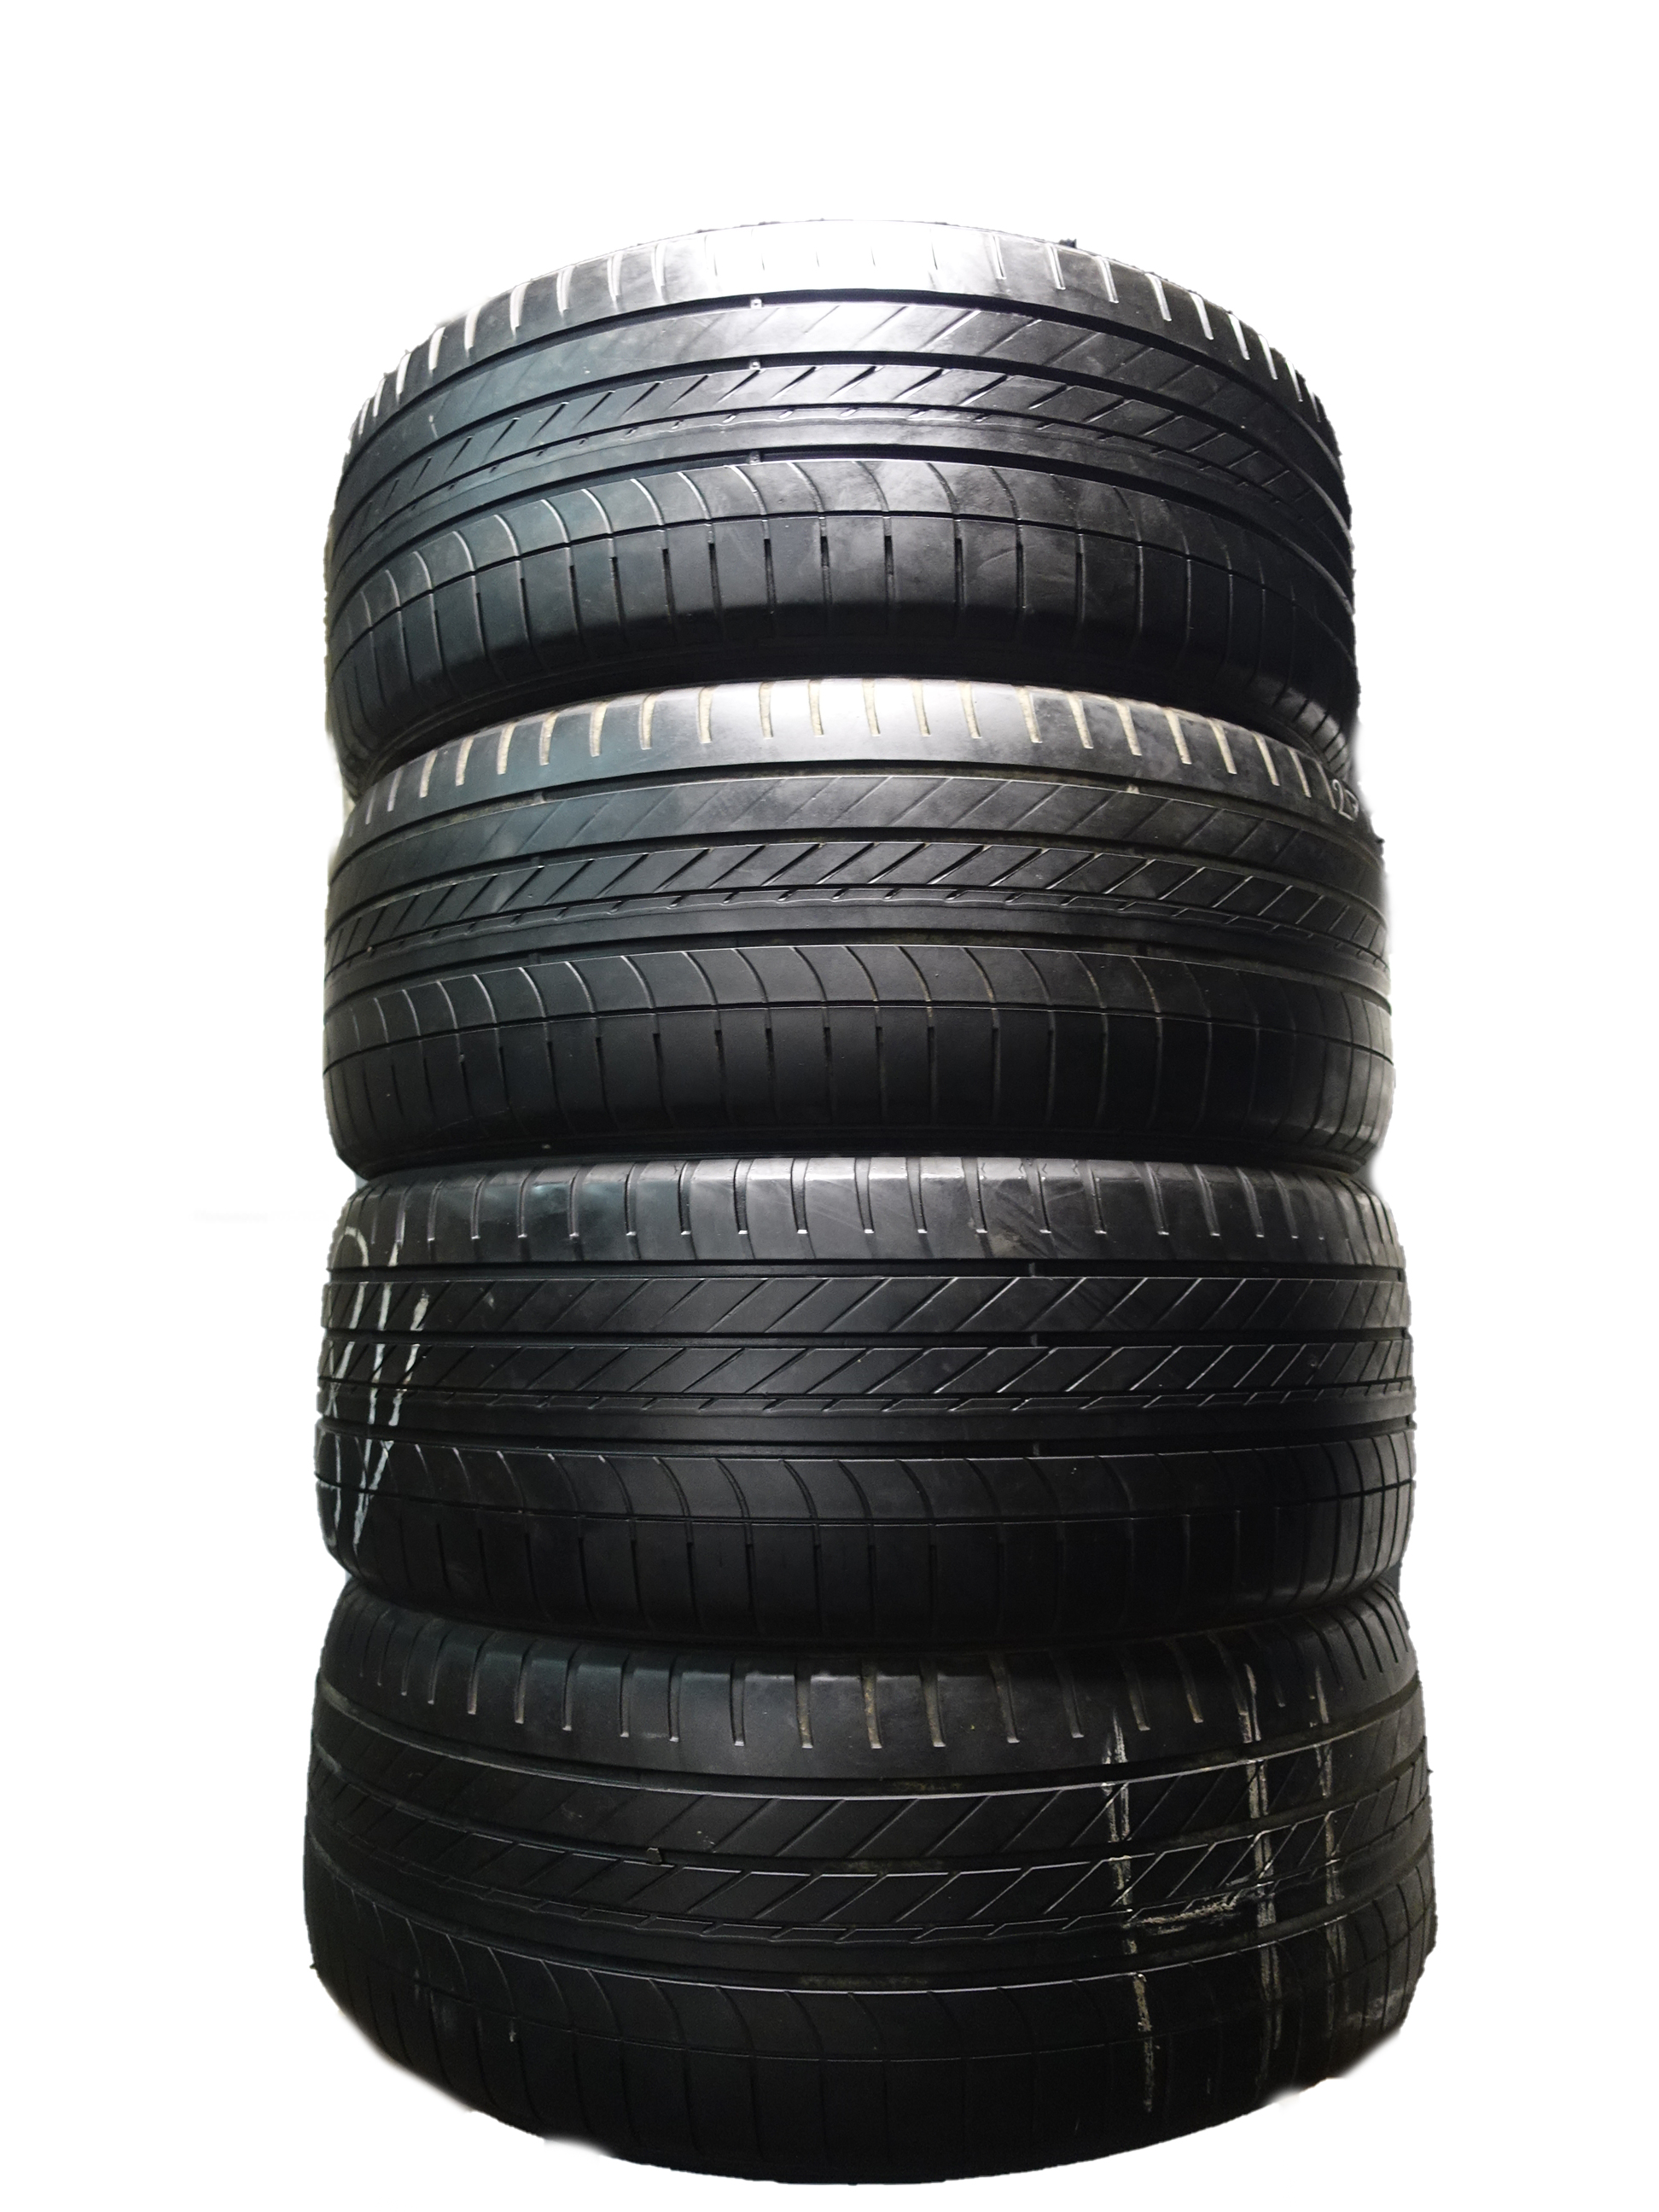 195 55 16 goodyear eagle nct 5